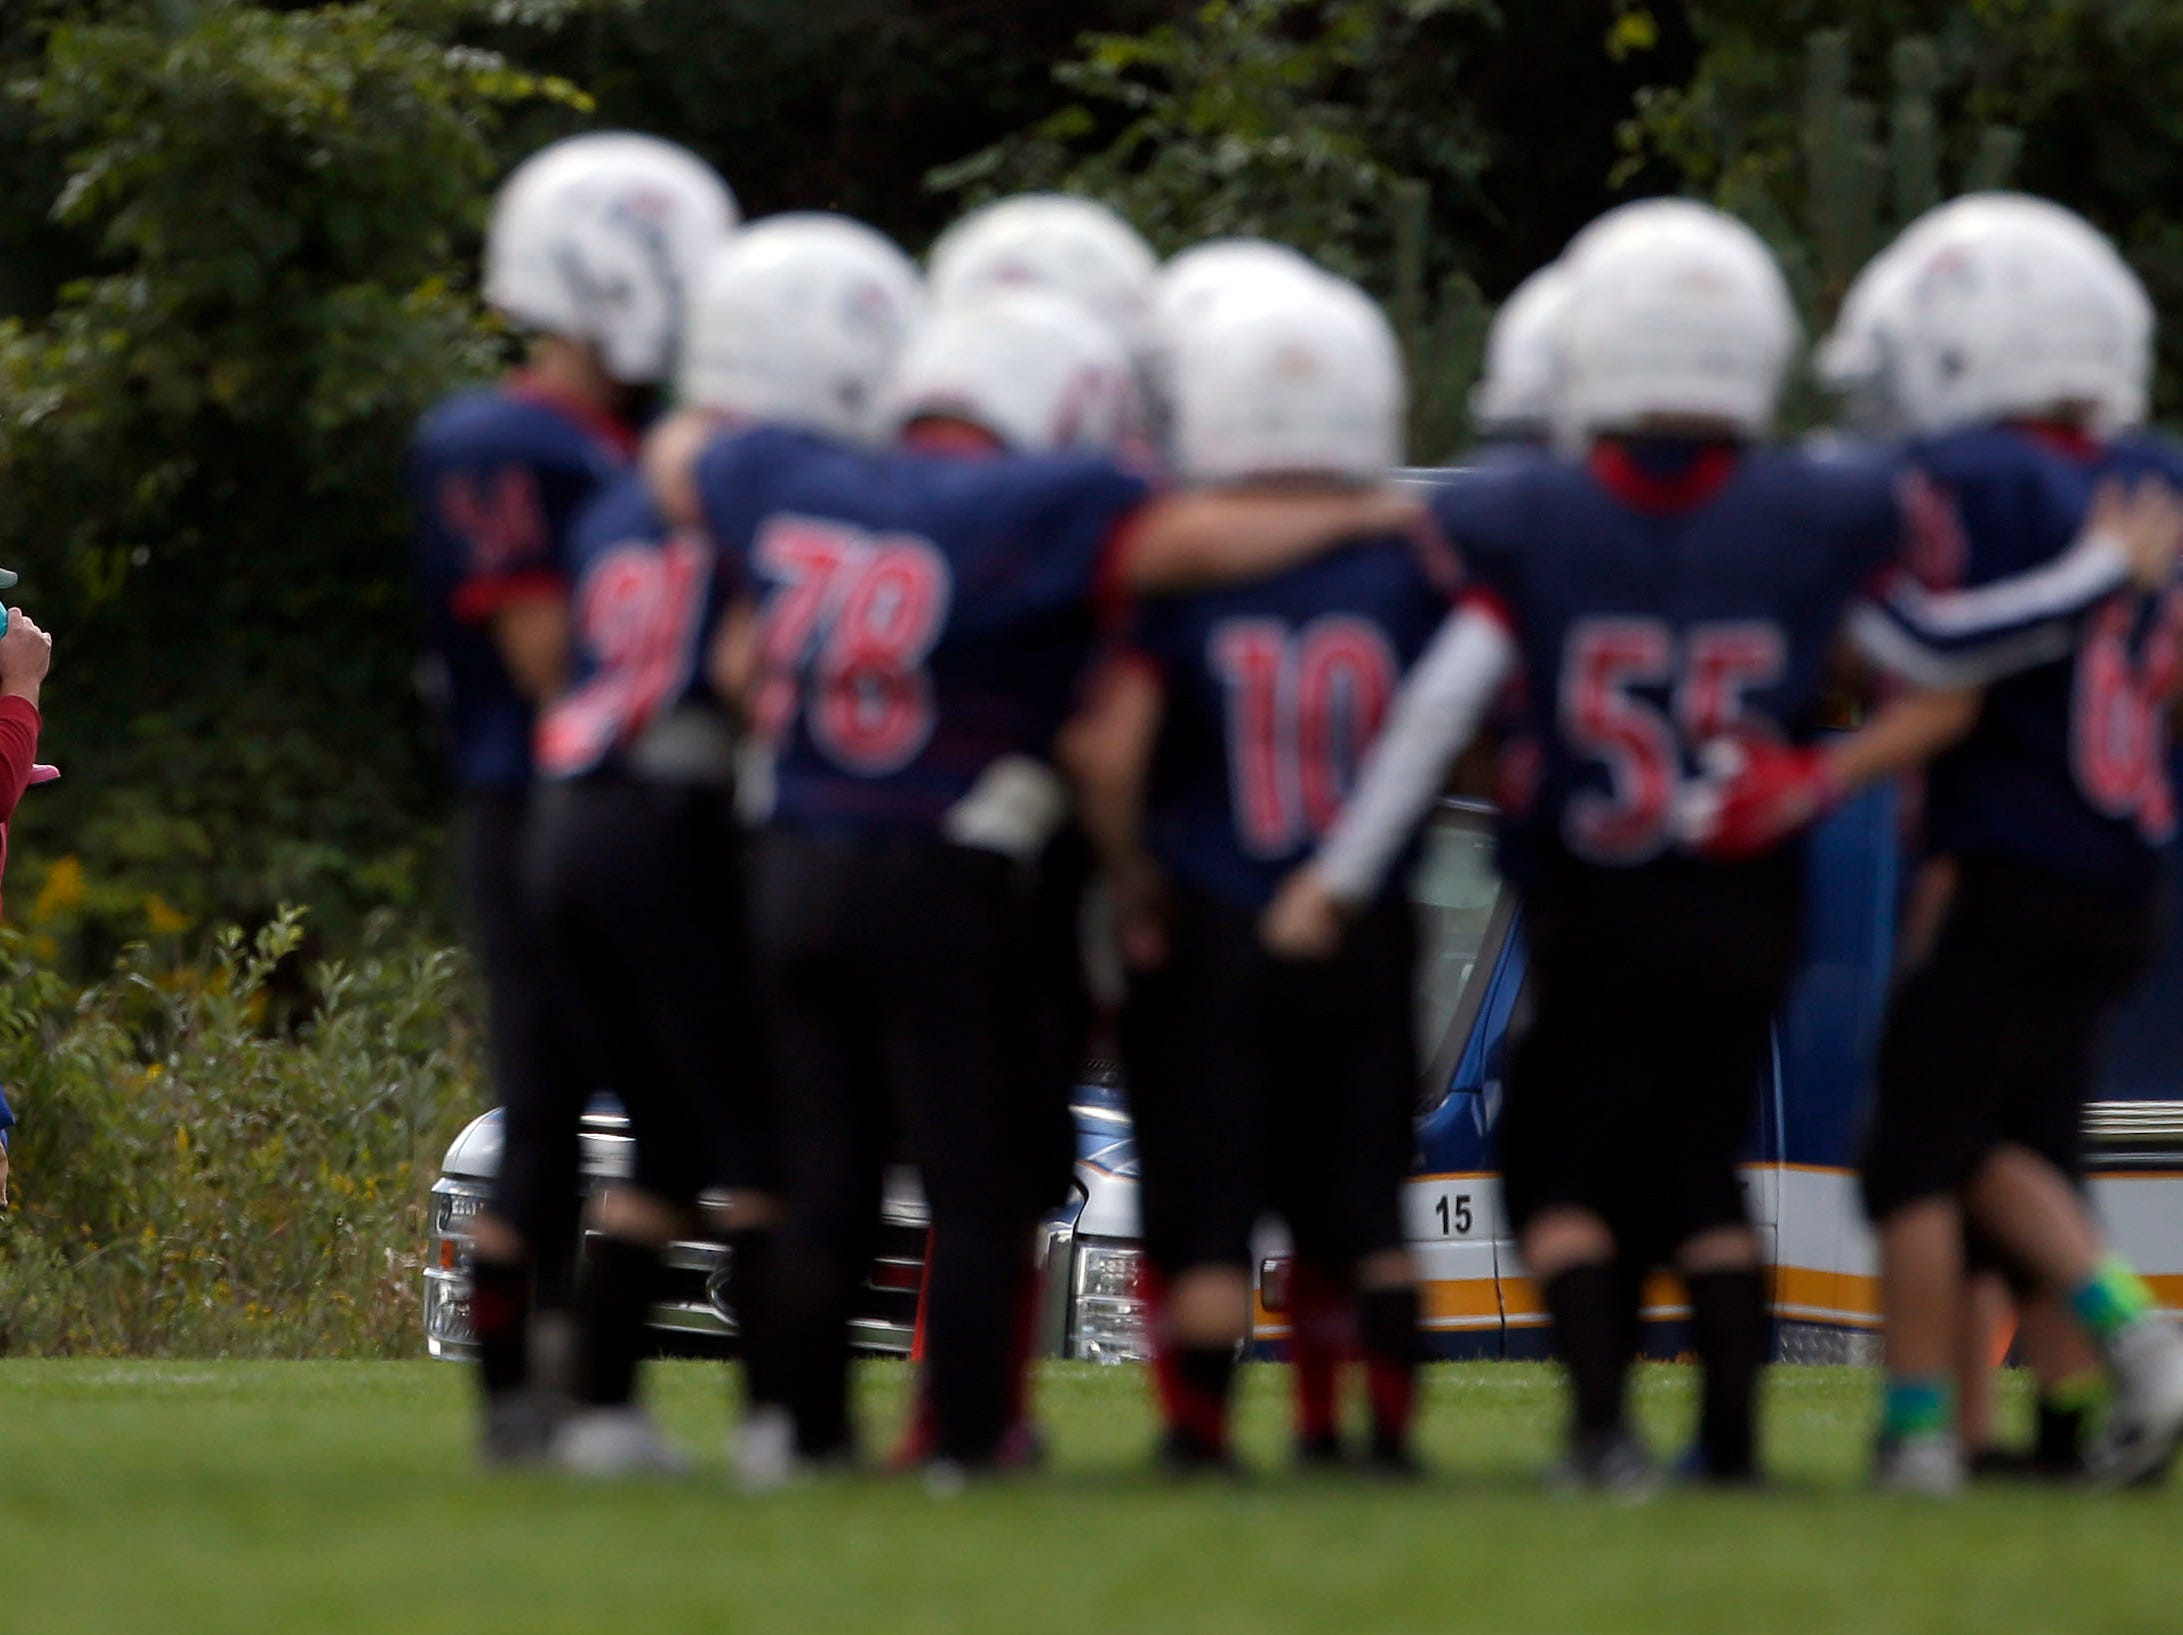 Families make their way to the sidelines as Fox Valley Pop Warner Football opens the season Saturday, September 8, 2018, at Plamann Park in Grand Chute, Wis.Ron Page/USA TODAY NETWORK-Wisconsin